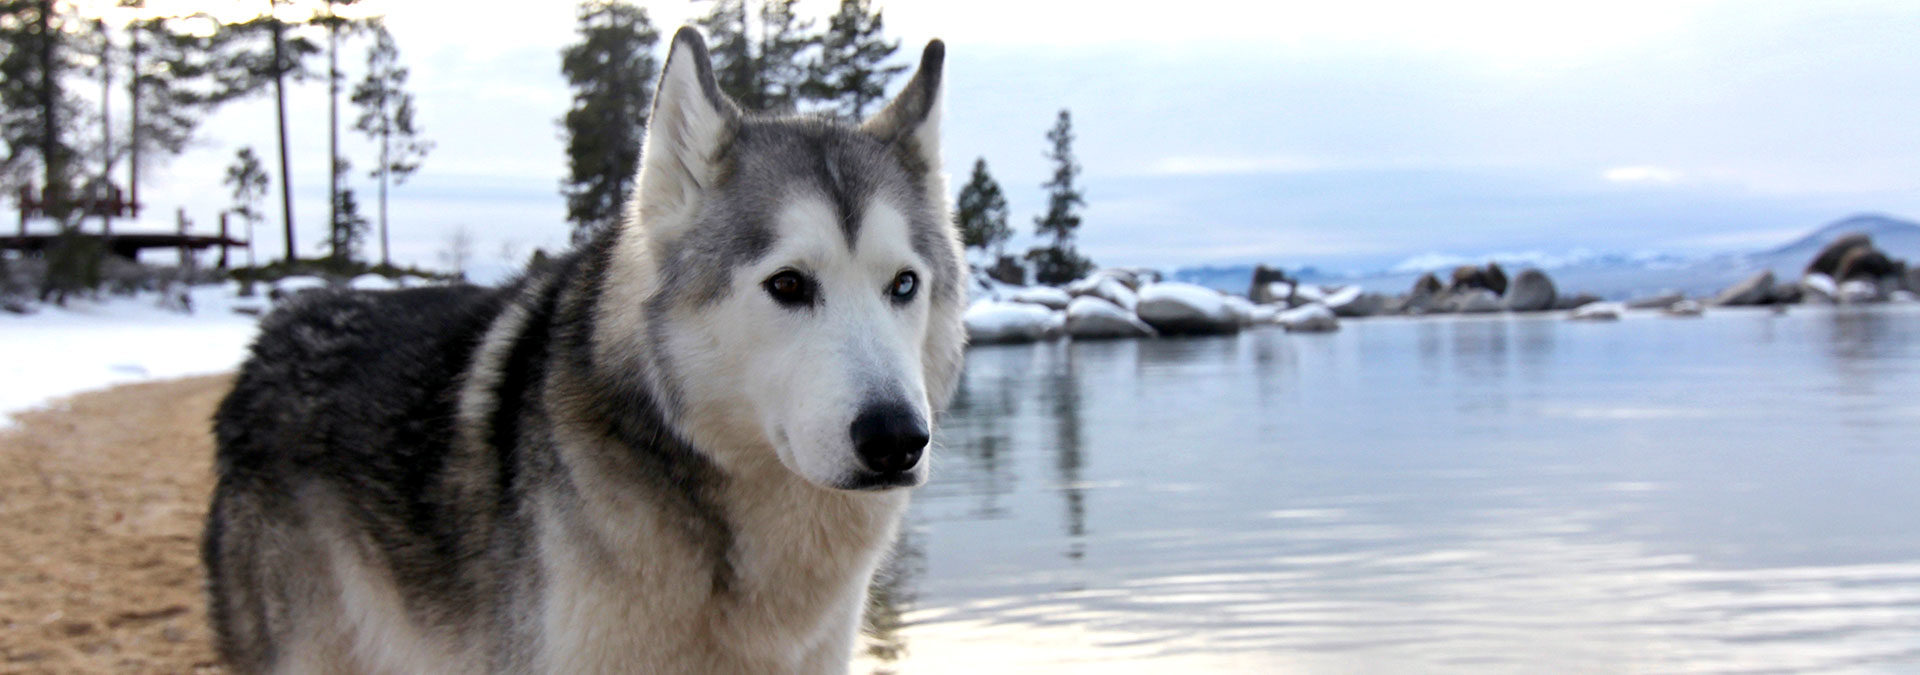 Loki Sand Harbor Lake Tahoe